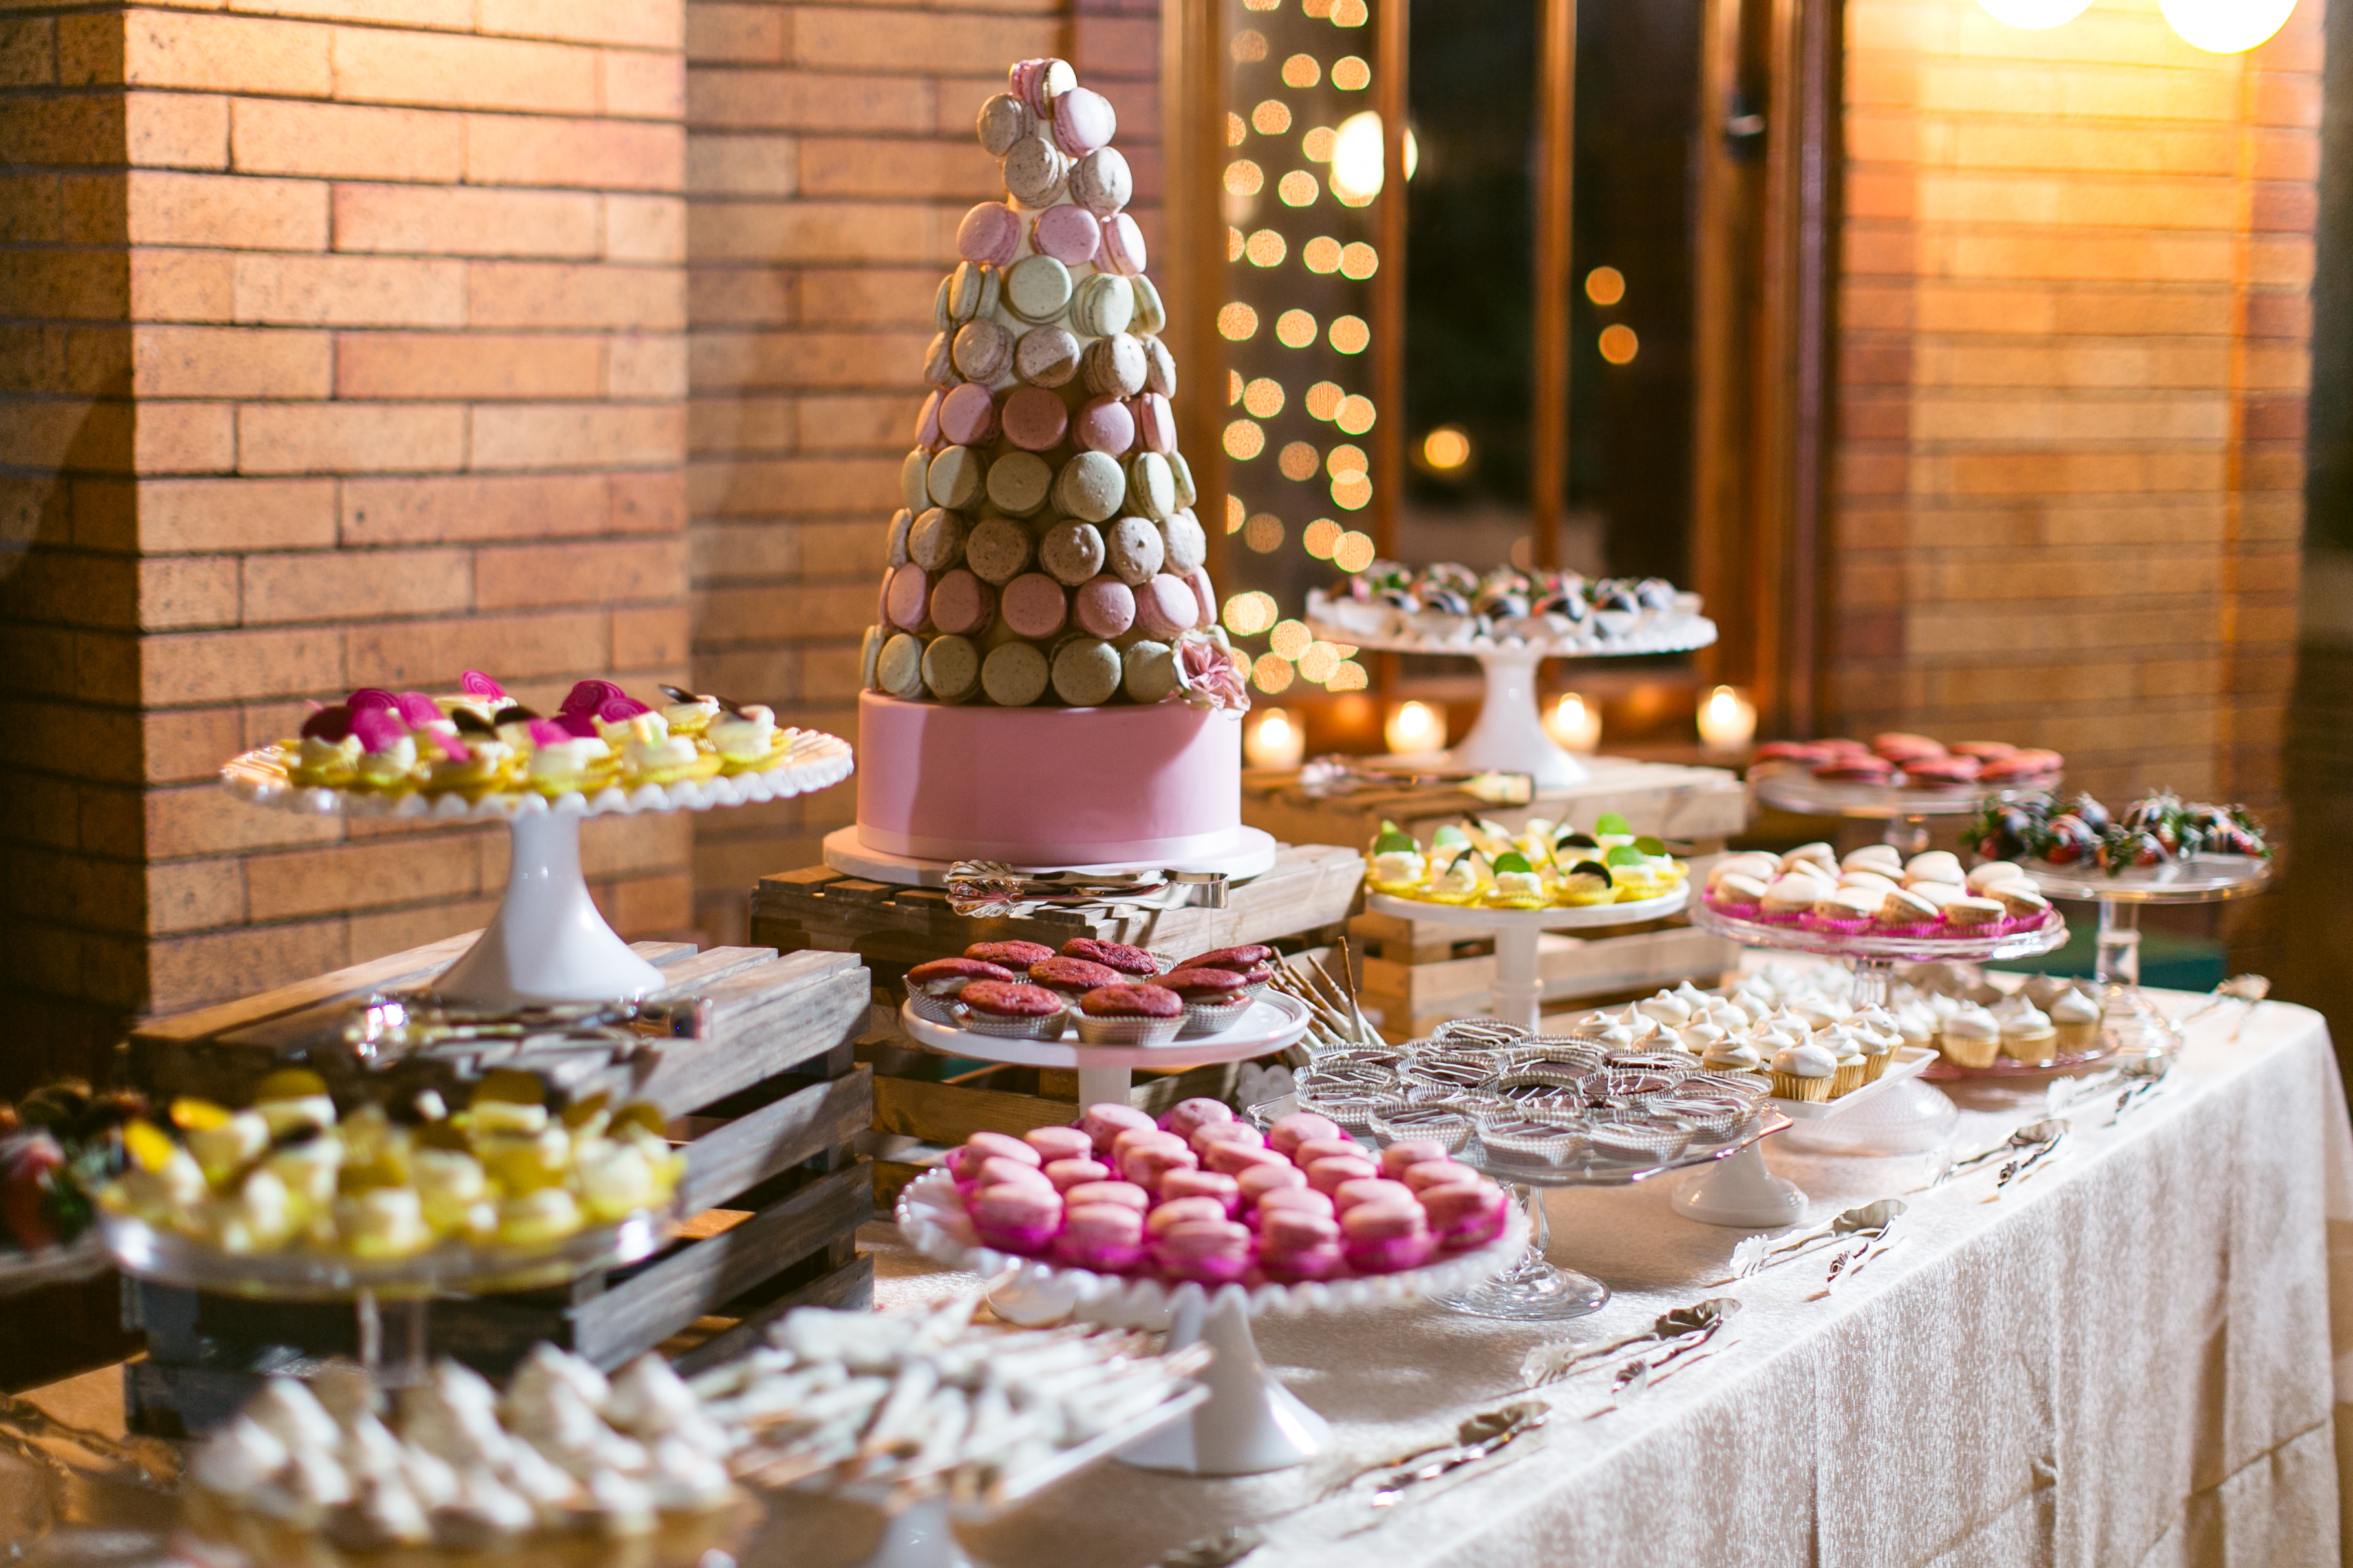 Pastry table Abbie and Mark side angle photo by Caili.jpg